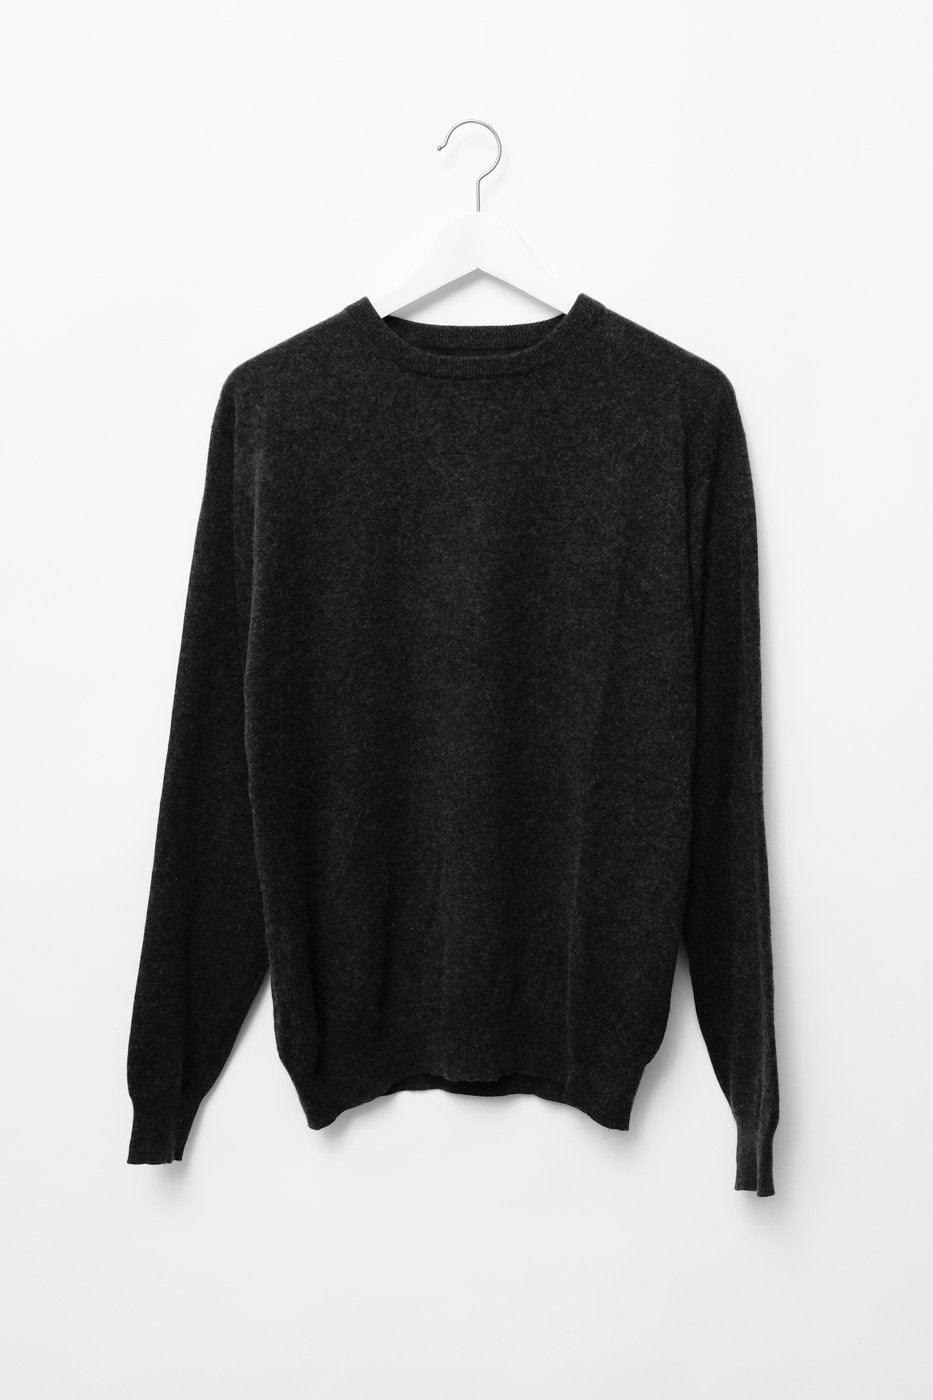 0310_CASHMERE SILK ANTHRACITE KNIT SWEATER